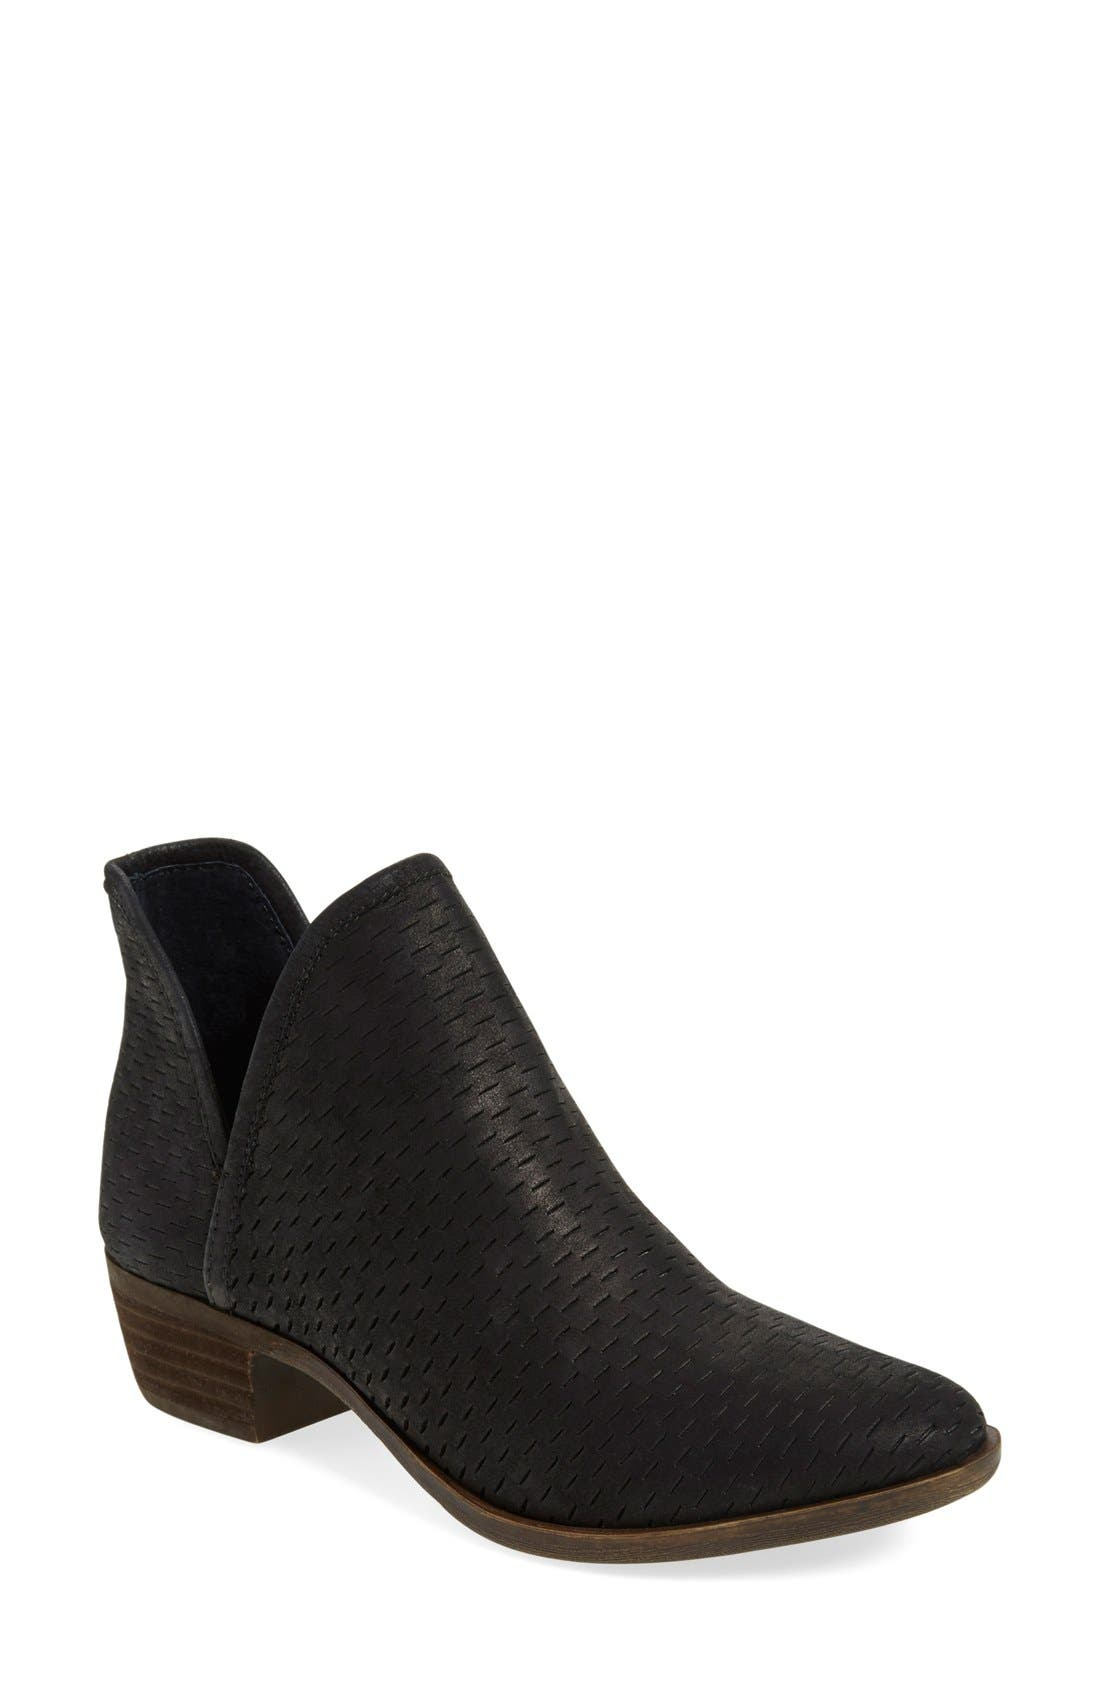 'Bashina' Perforated Bootie,                         Main,                         color, 001